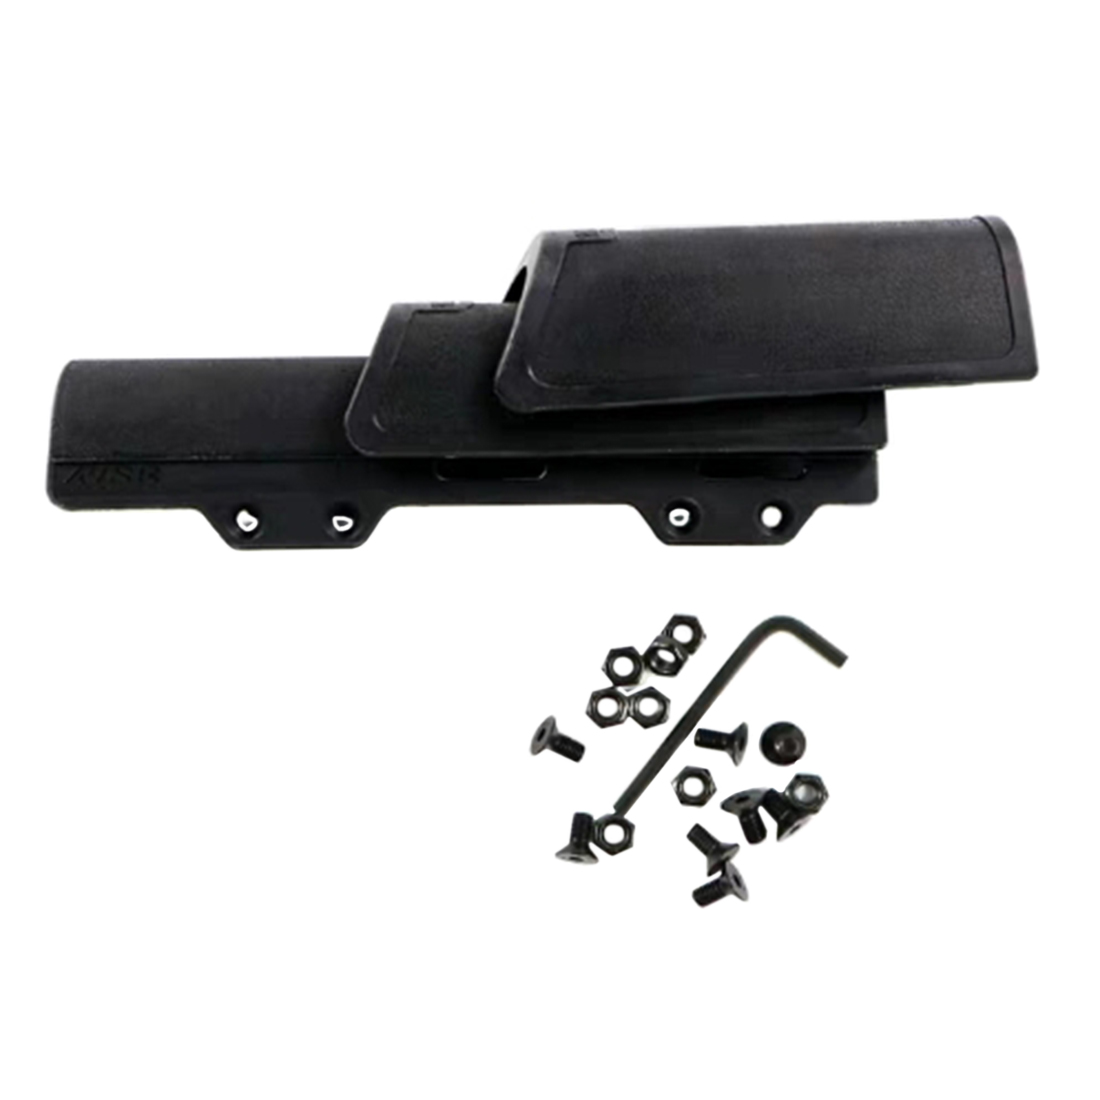 Special Cheek Riser For CTR Stock - Black